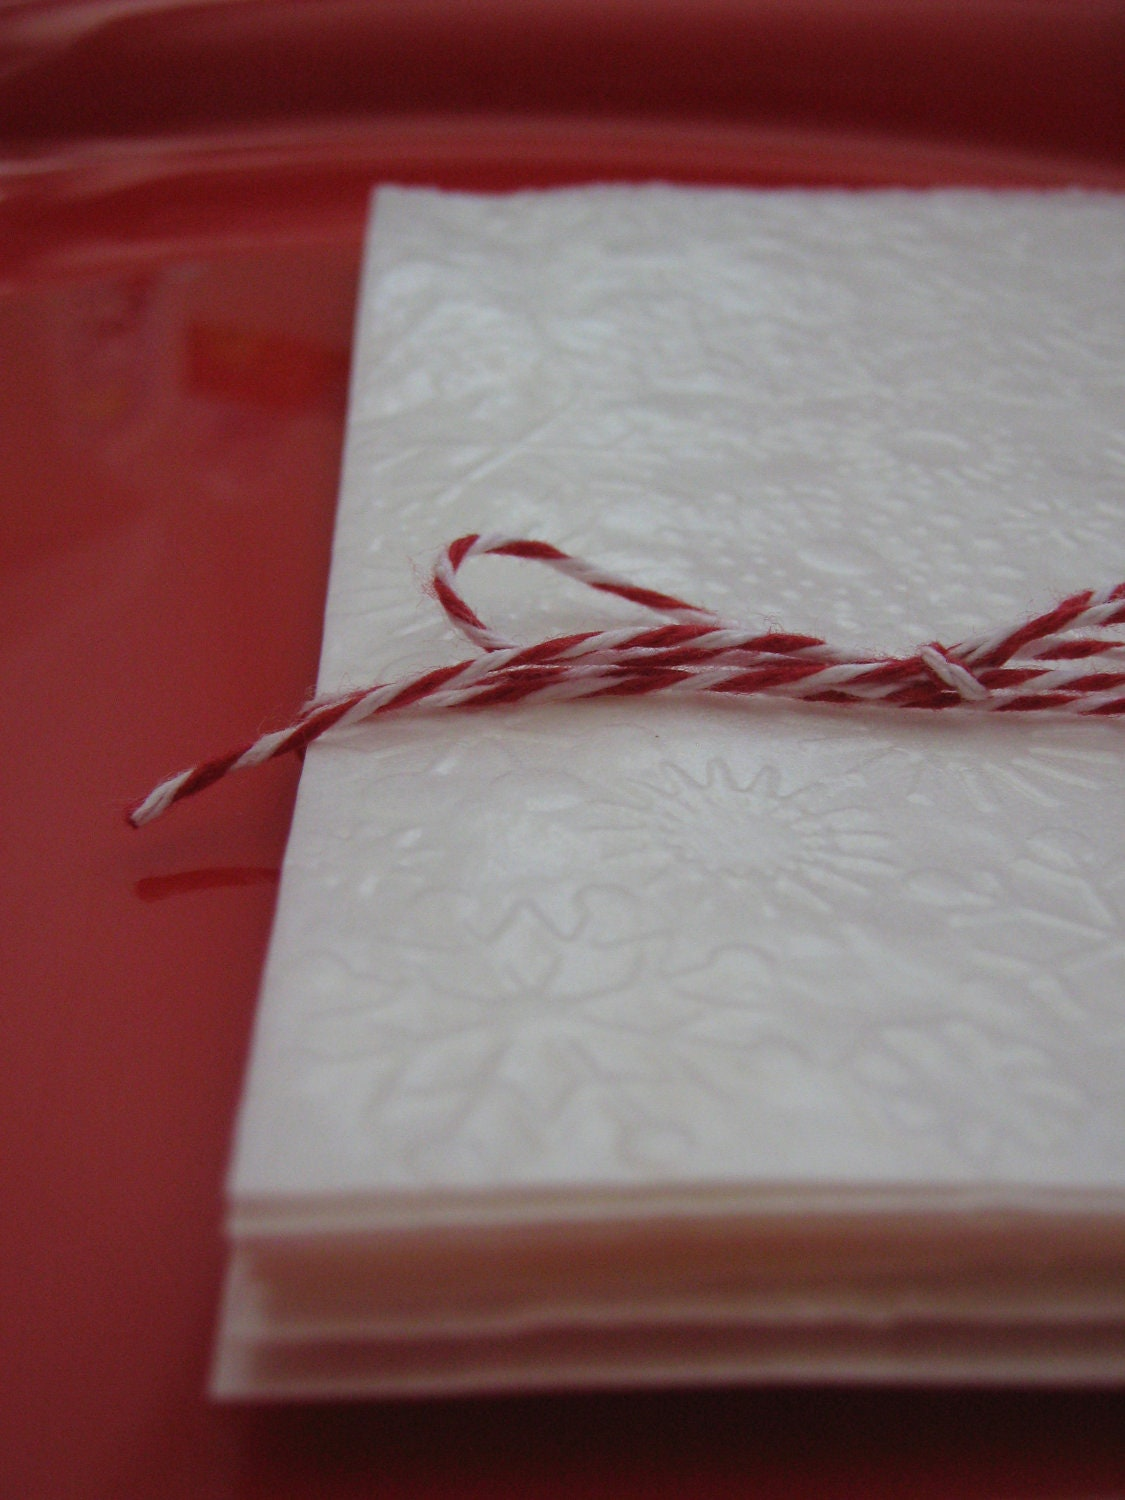 Snowflake Embossed White Glassine Bags 1/2 pound - 4-3/4 x 6-5/8 inches for Gifts, Packaging Products and Favors - Set of 12